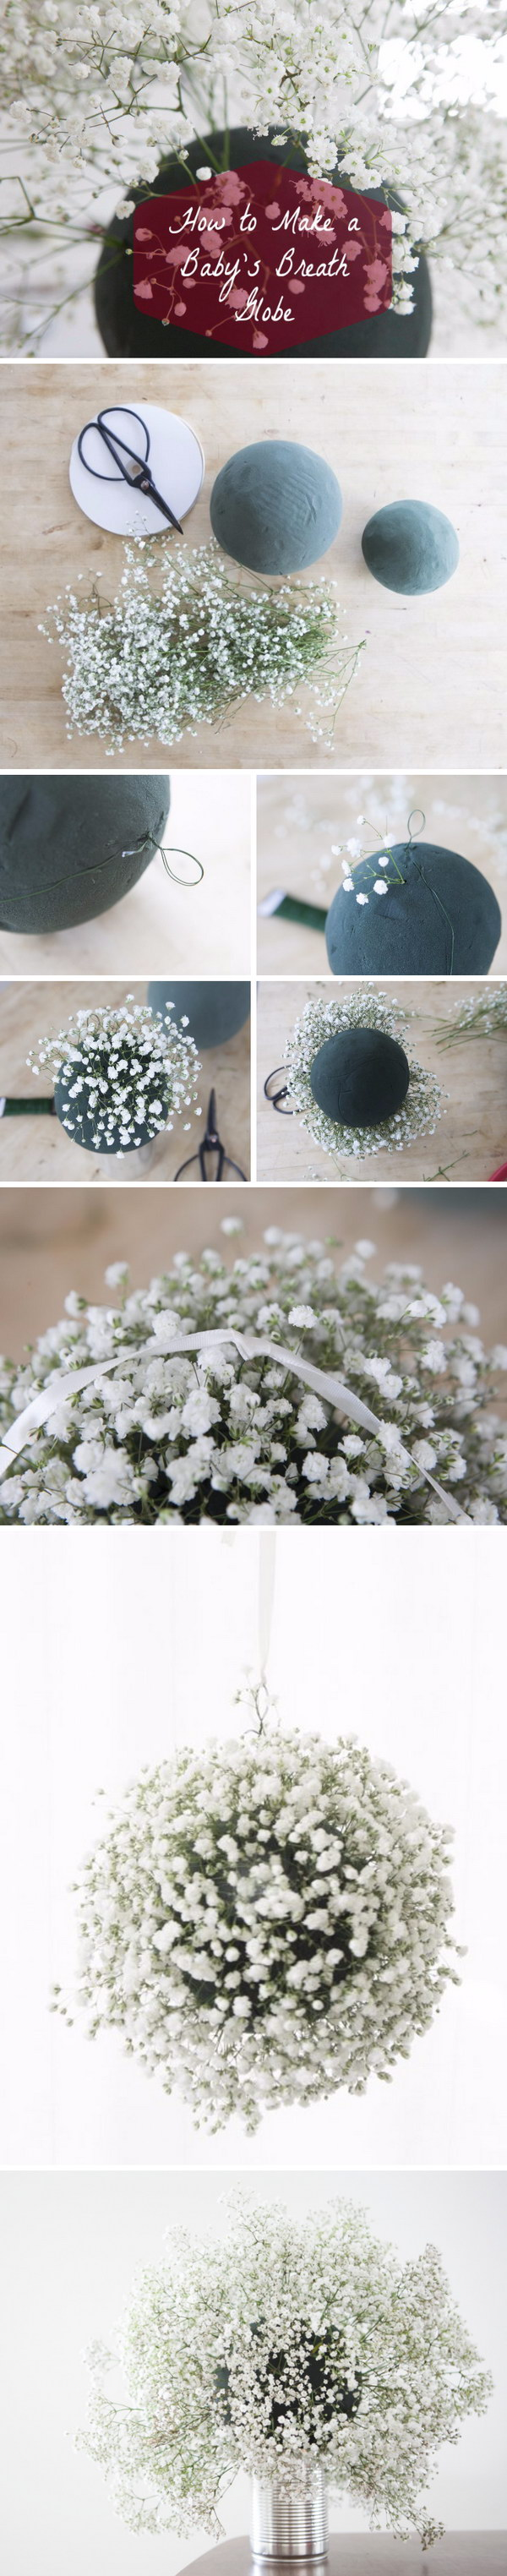 DIY Baby's Breath Wedding Globes